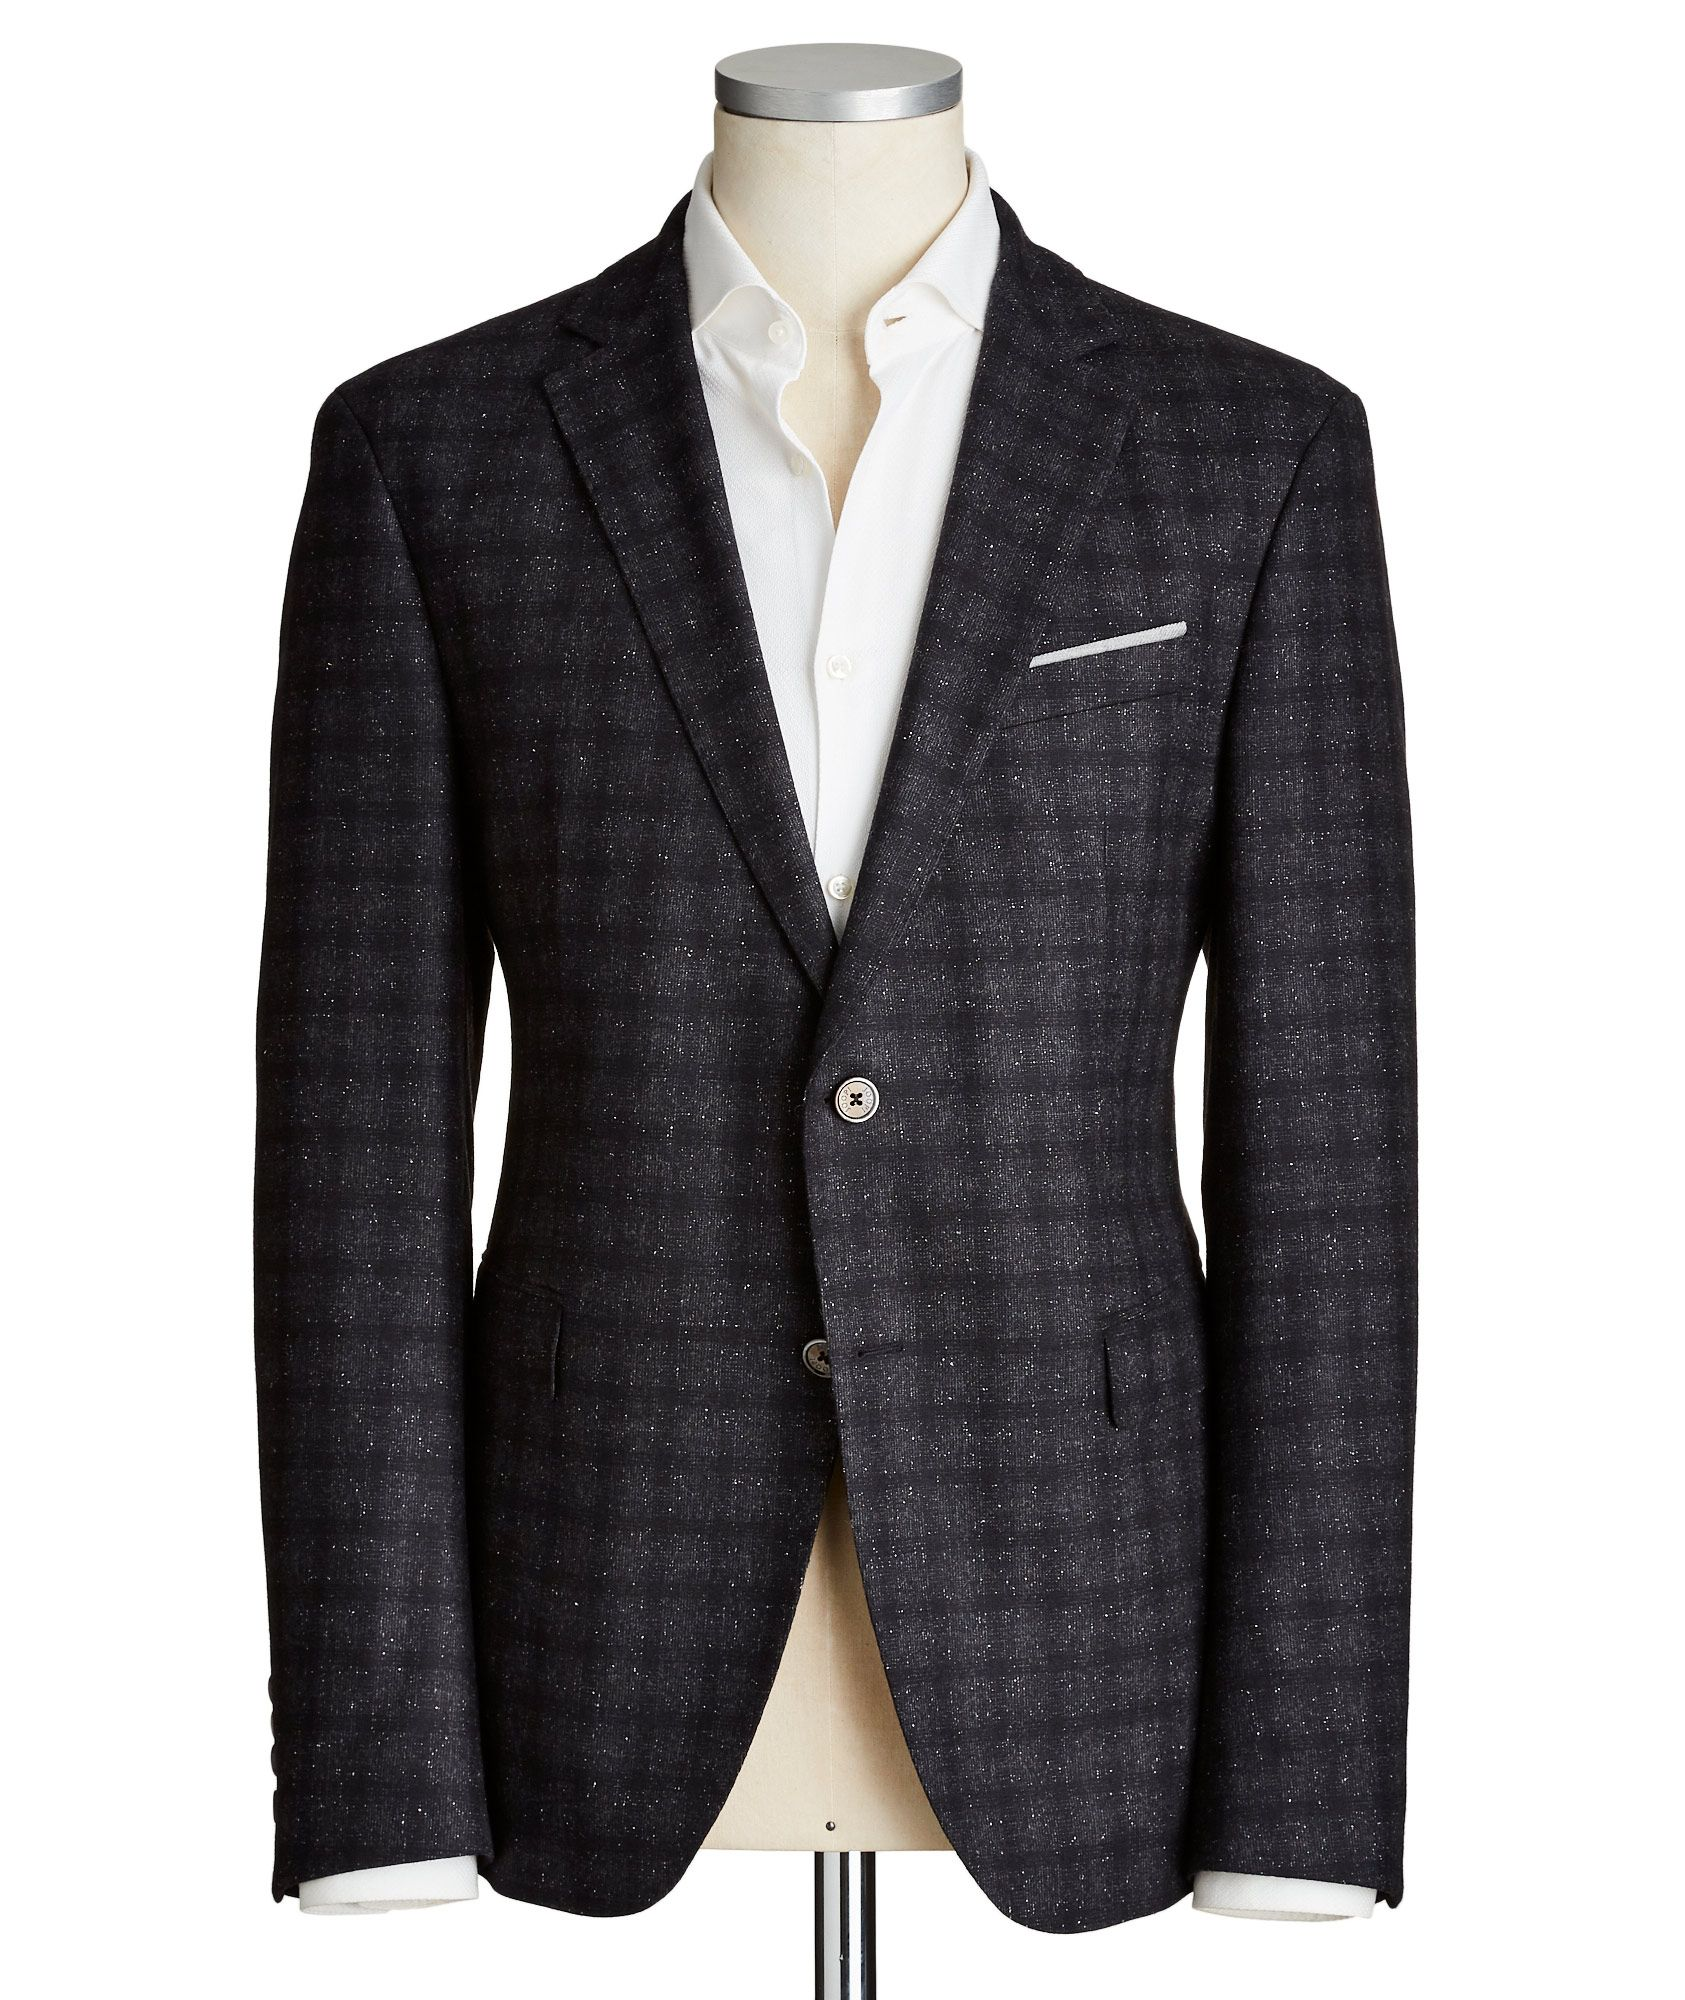 best website sale uk huge sale Clothing Joop!!!!! Mens Suit Jacket rmrvpark.ca